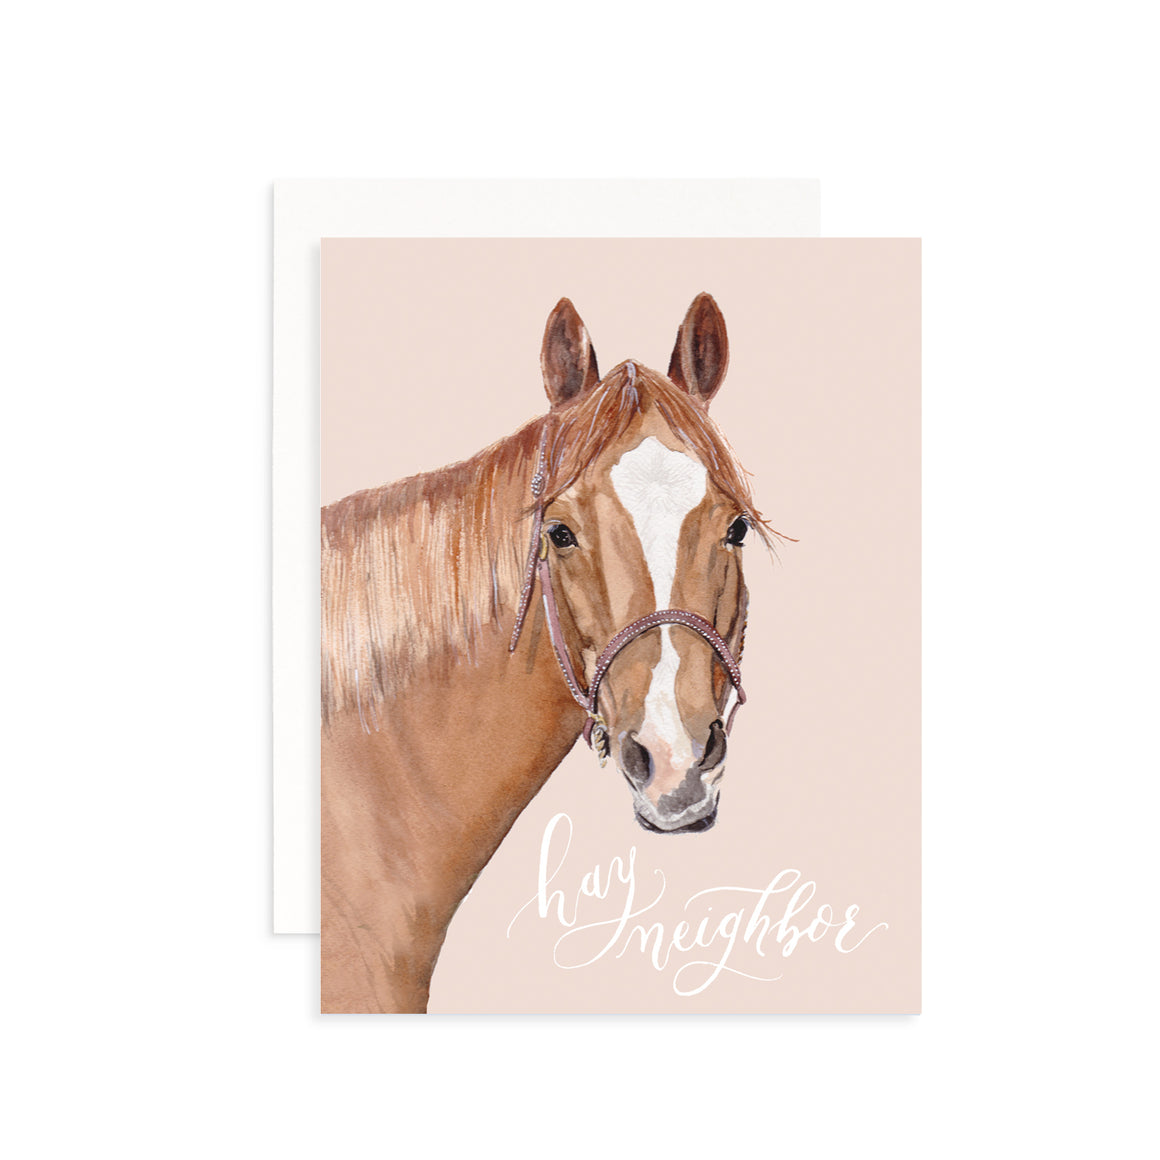 Hay Neighbor Greeting Card